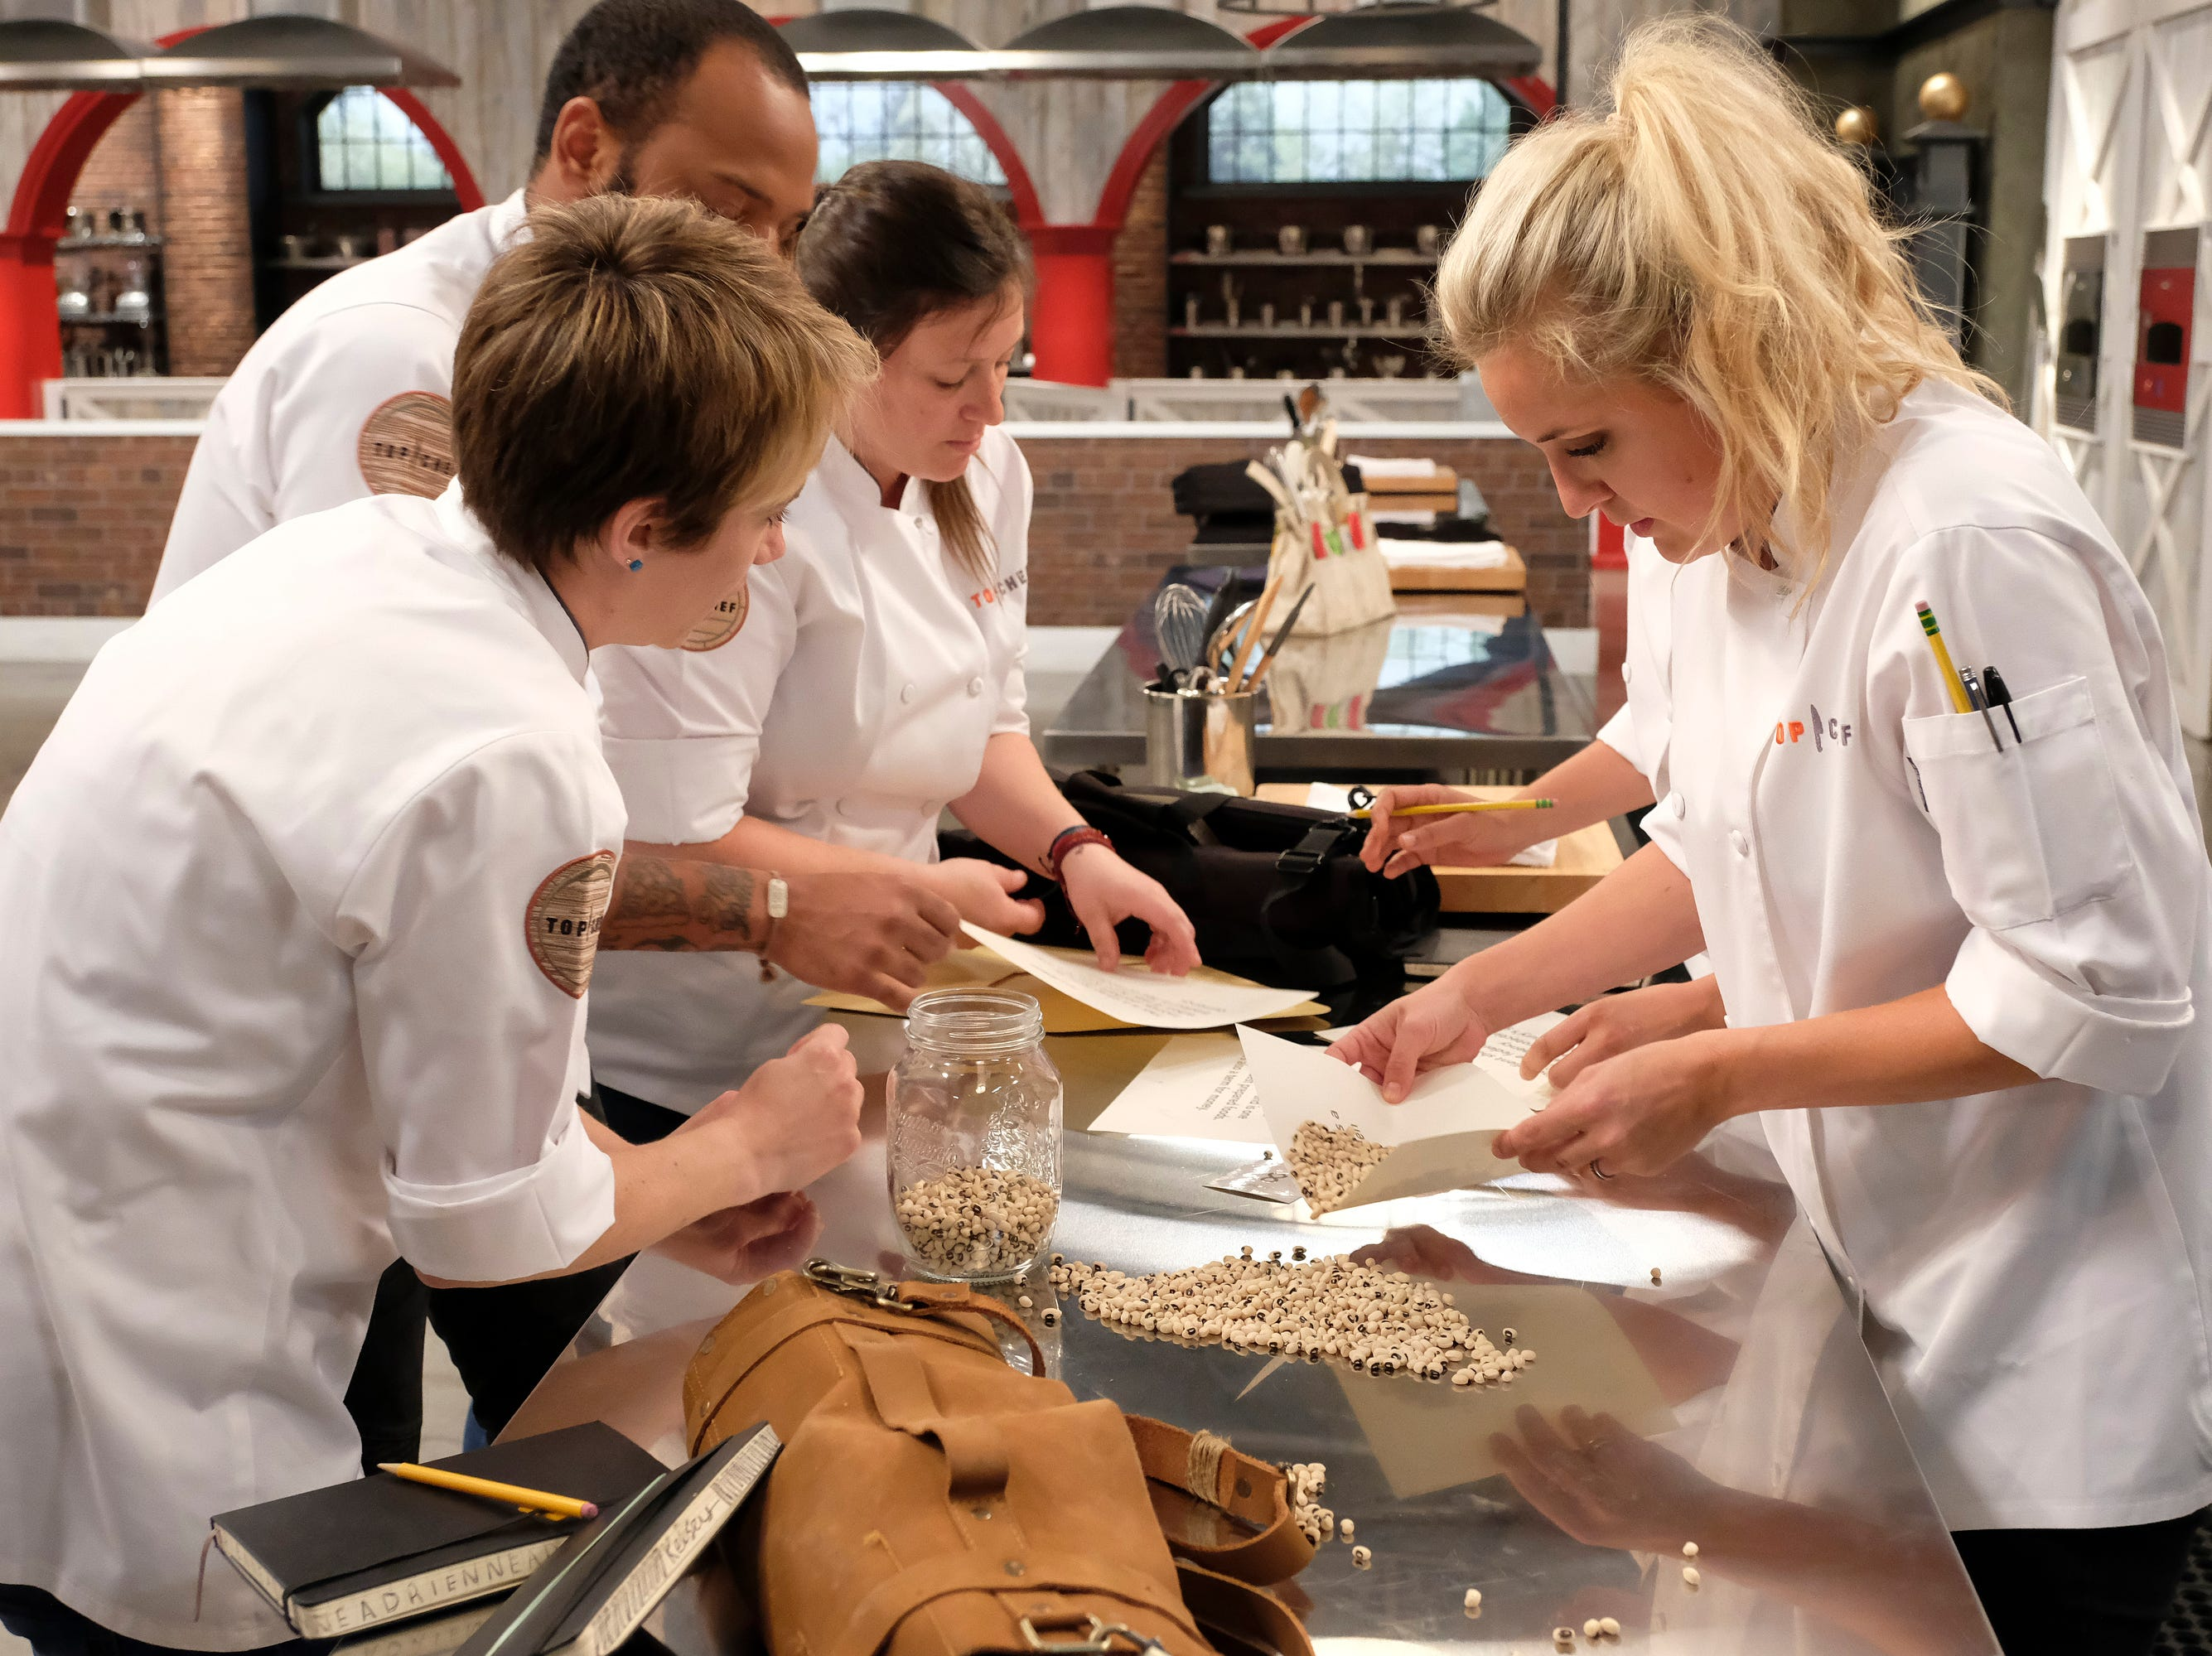 (From left to right): Contestants Adrienne Wright, Sara Bradley and Kelsey Barnard on episode 10 of Bravo's 'Top Chef: Kentucky' season.